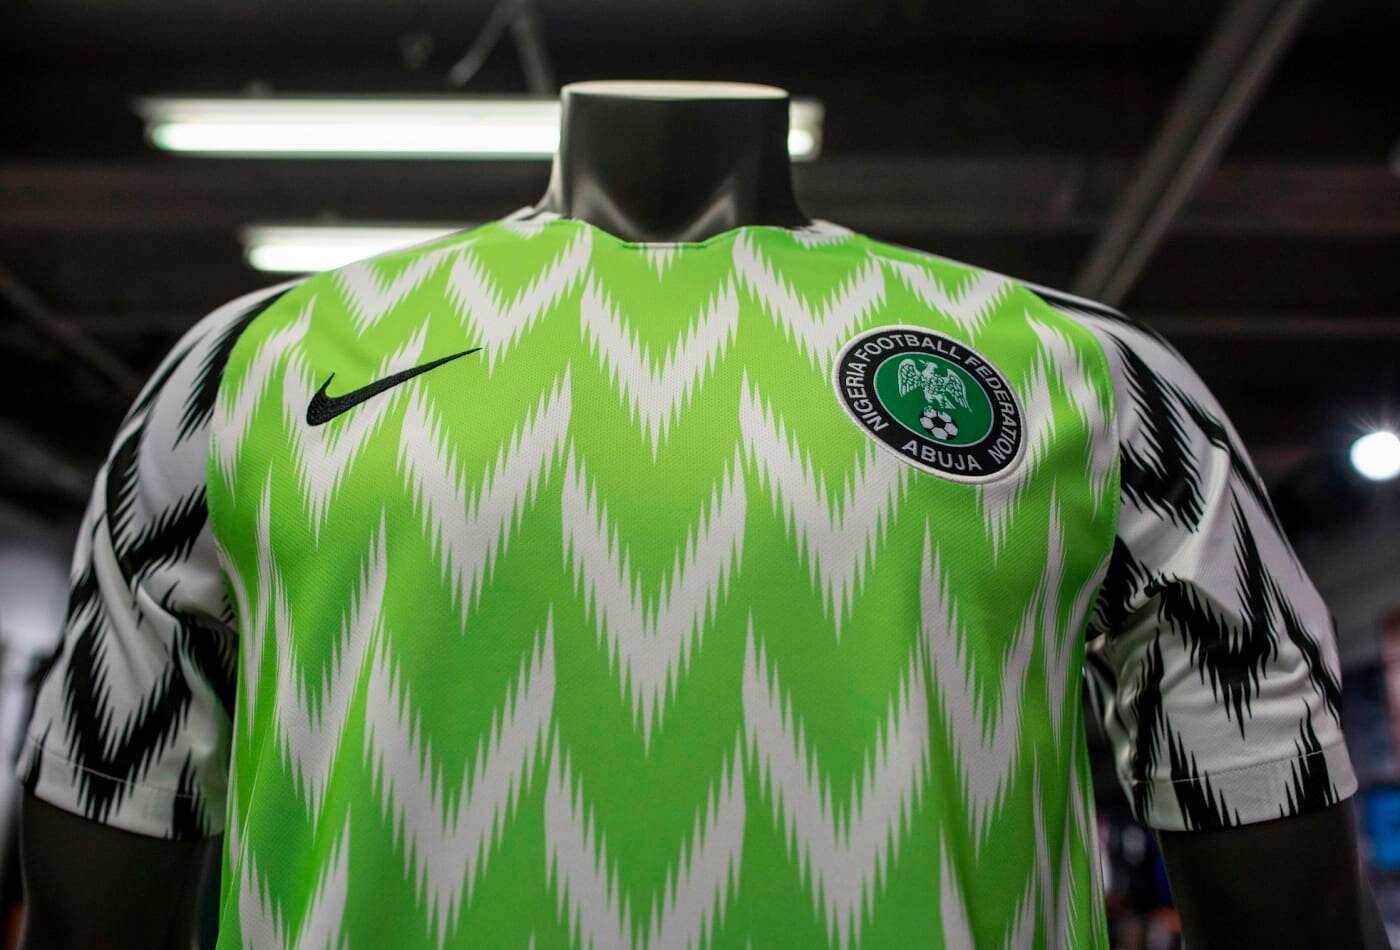 Super Eagles' 2018 Home Attire Voted 5th Best All-Time Iconic Football Shirt